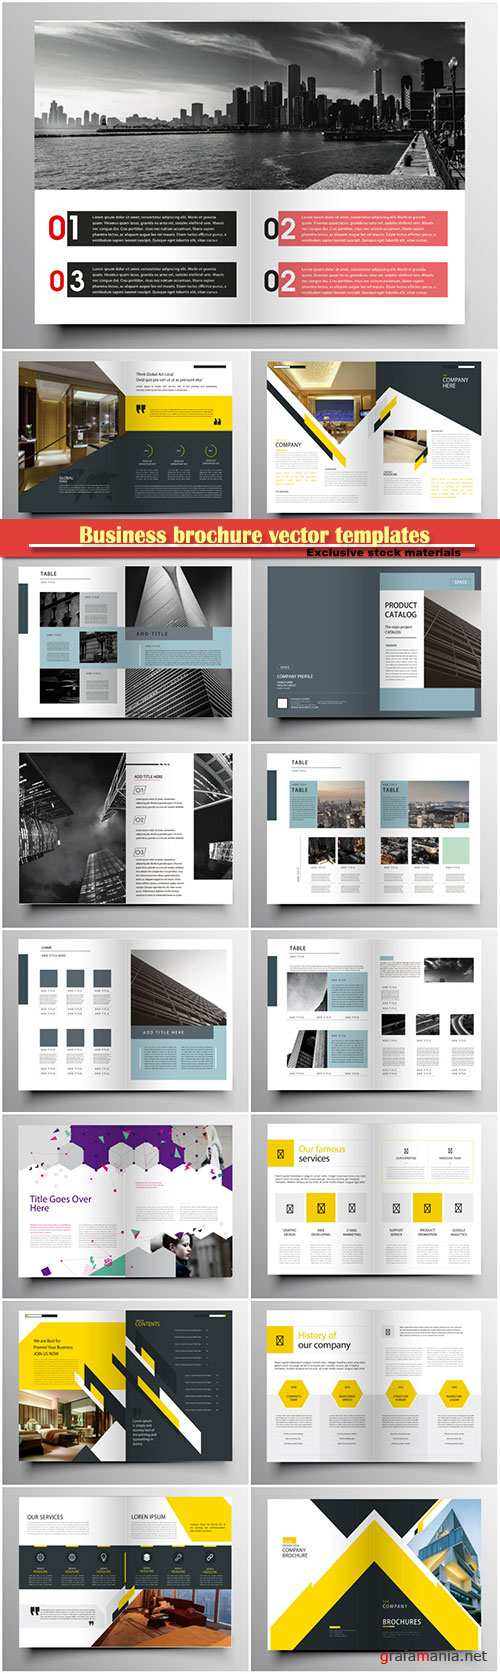 Business brochure vector templates, magazine cover, business mockup, education, presentation, report # 66